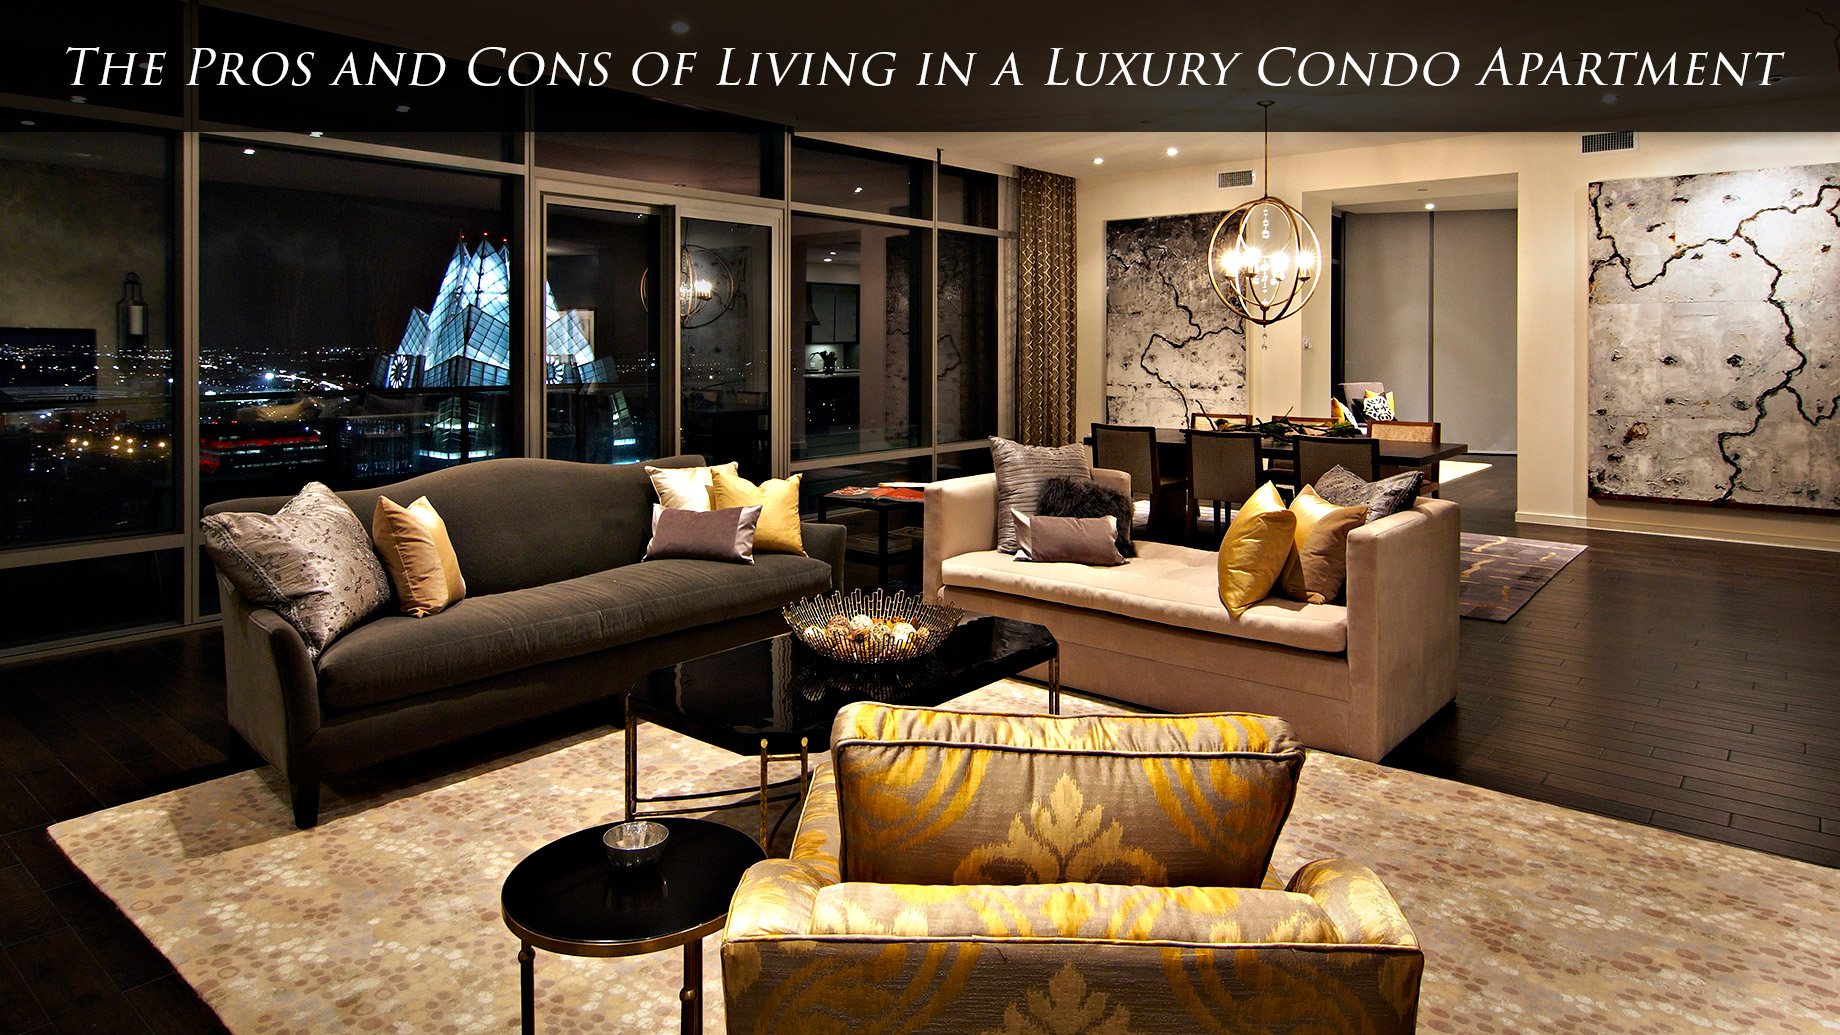 The Pros and Cons of Living in a Luxury Condo Apartment